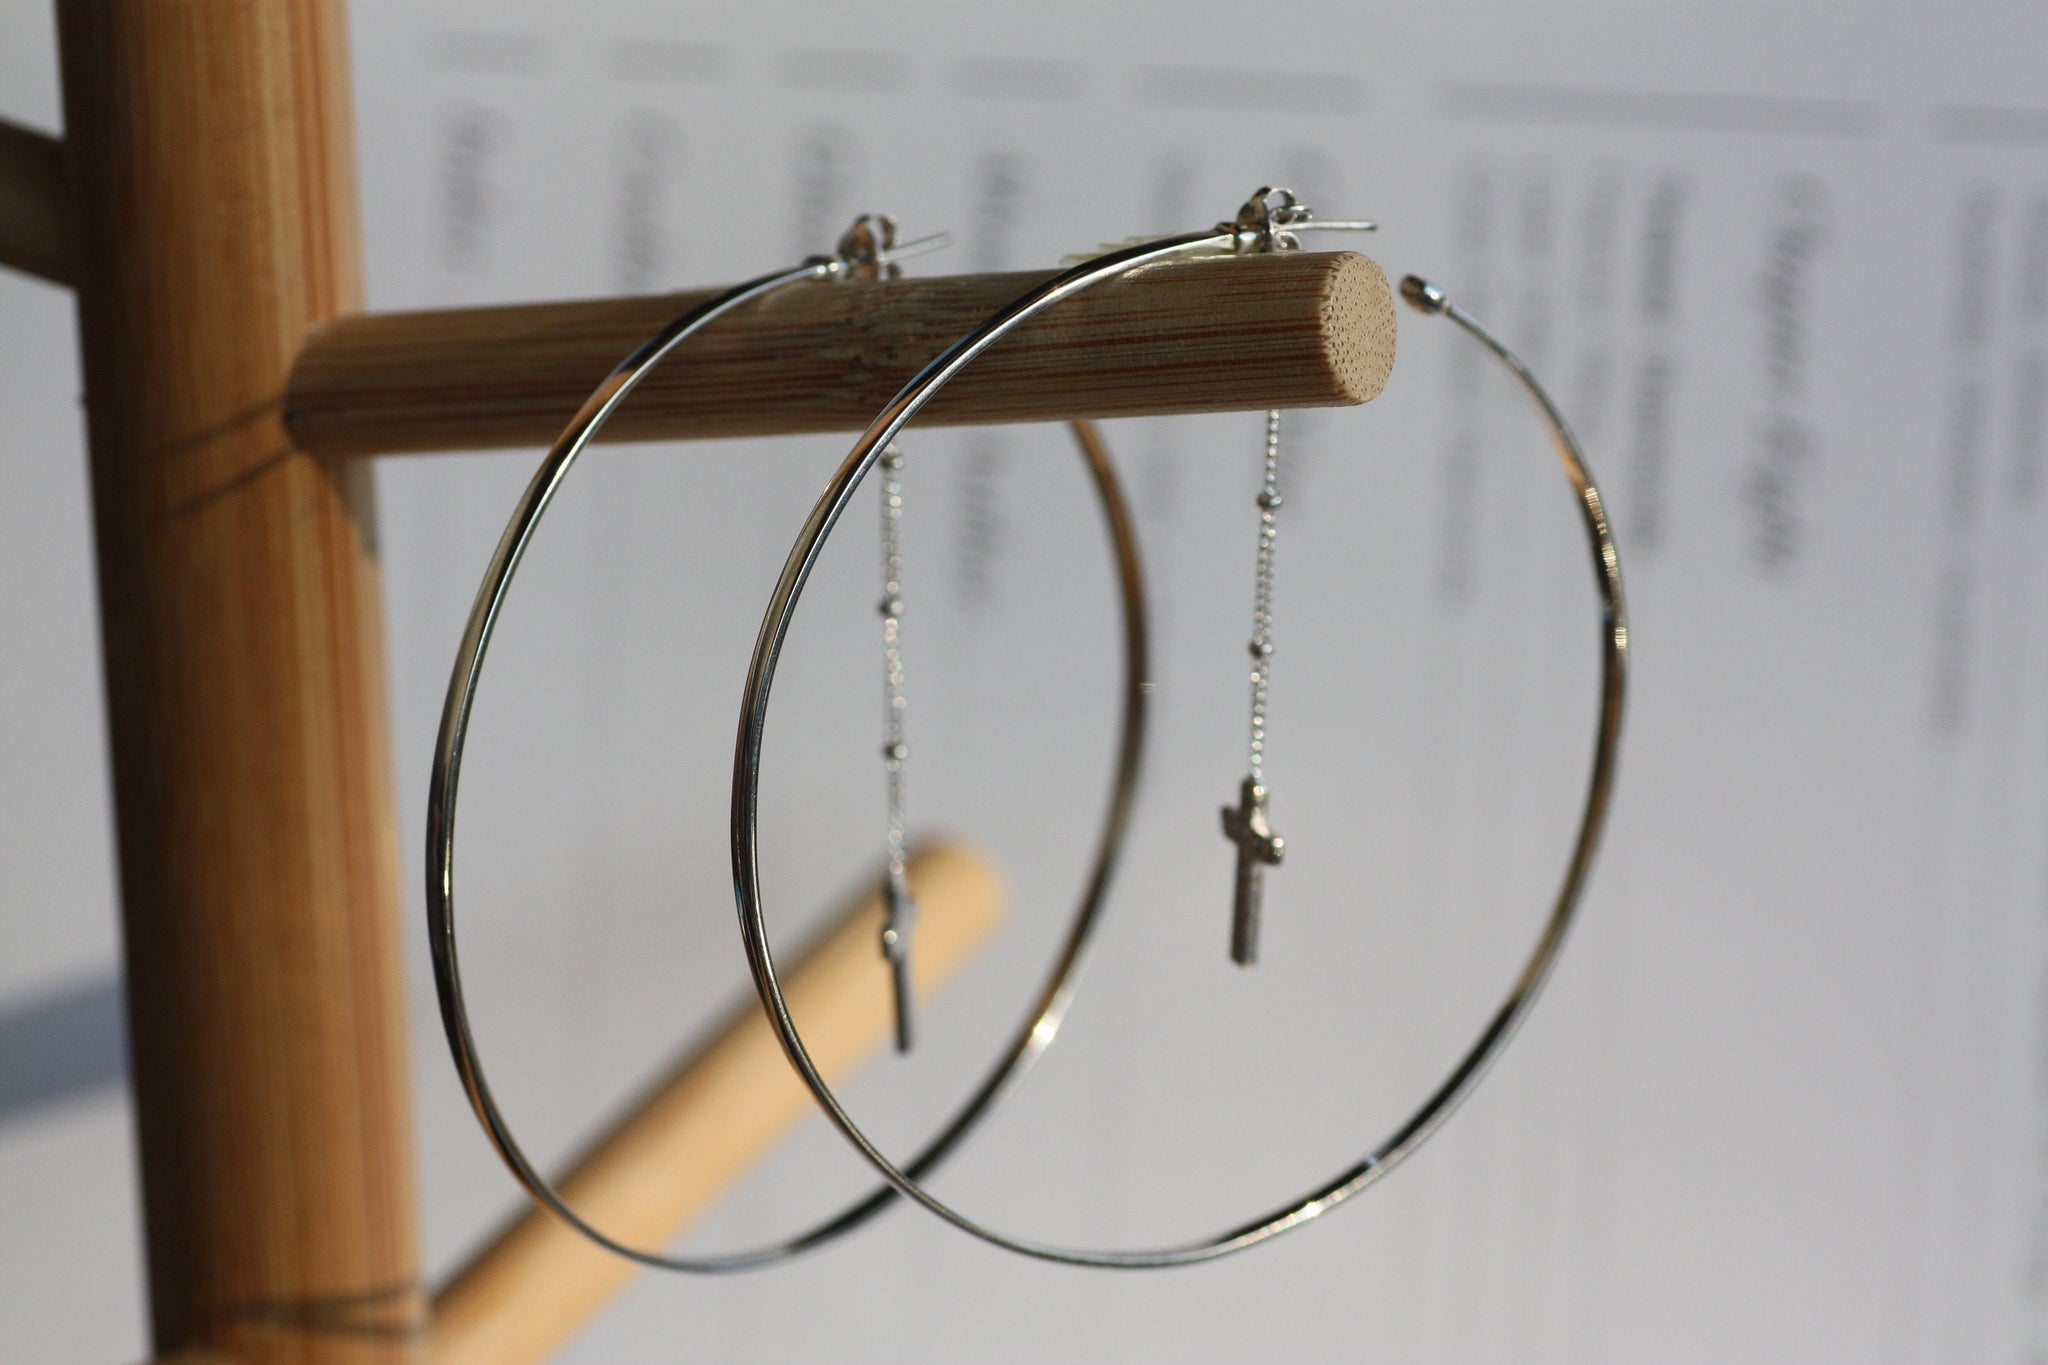 Silver Hoop earrings with chain and Cross